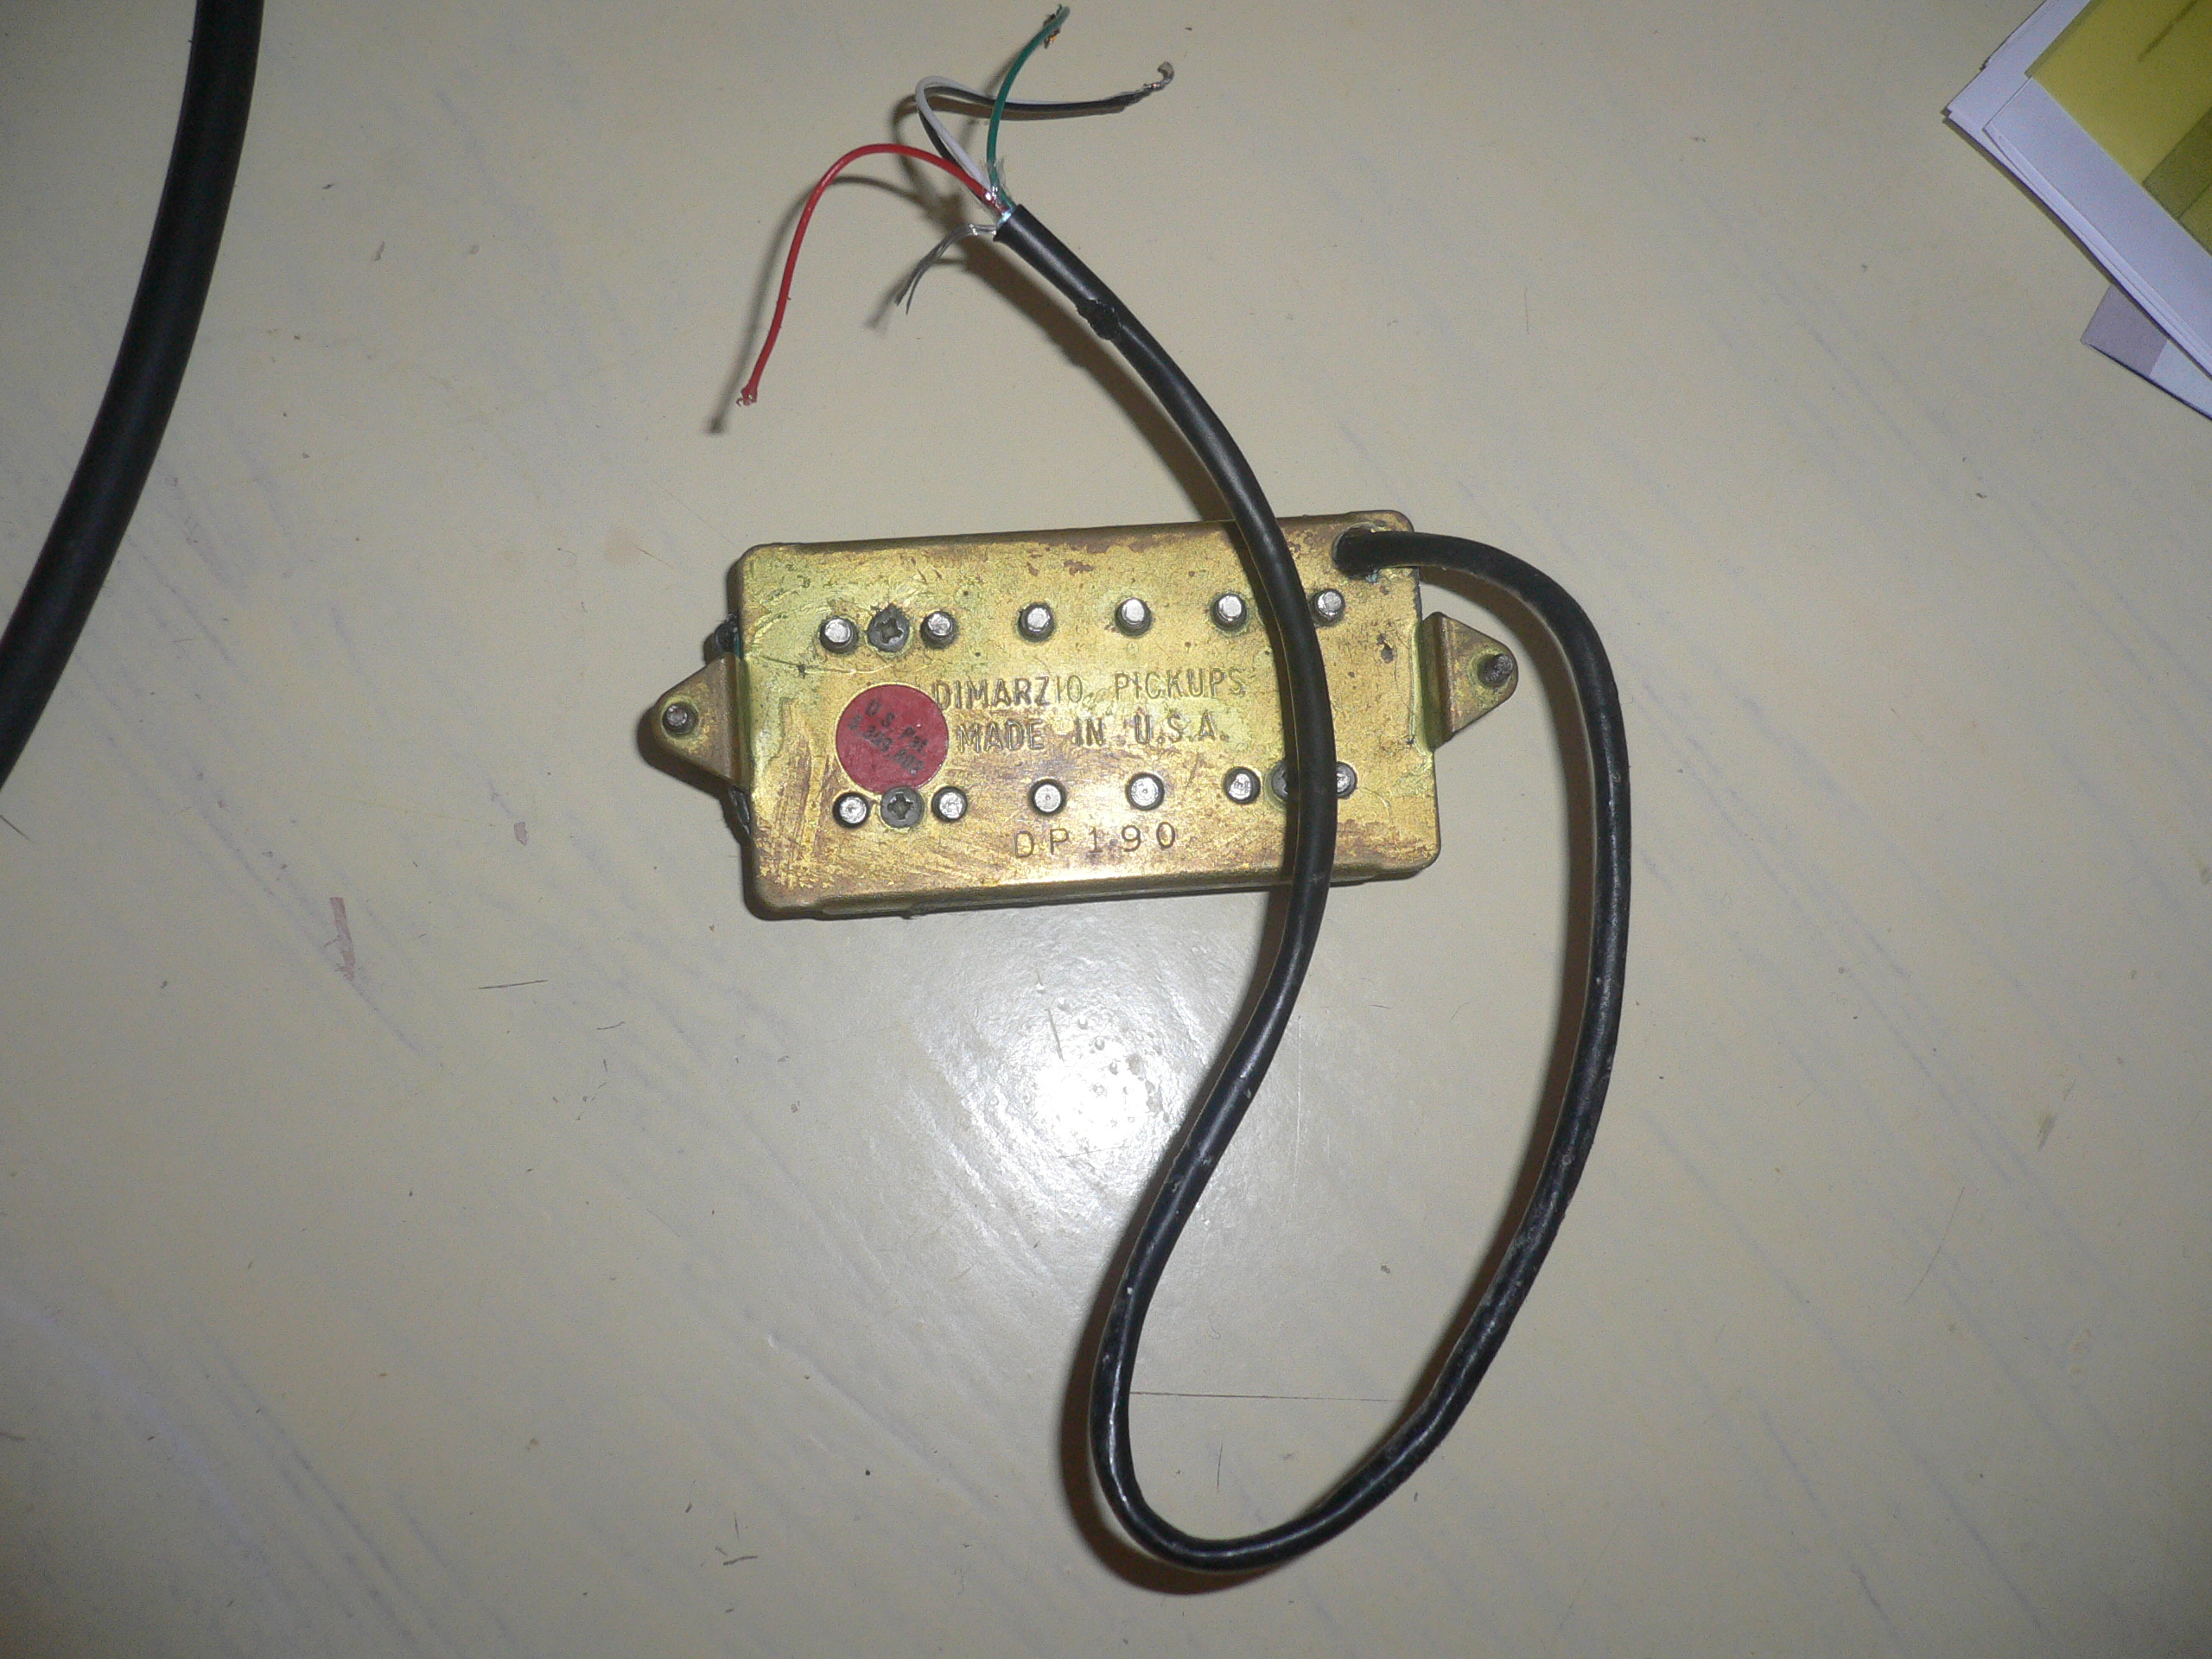 Pretty Two Humbuckers 5 Way Switch Tiny Hh 5 Way Switch Wiring Round Gretsch Wiring Harness Solar Panel Diagram Old Solar Panel Wiring Guide WhiteSolar Panel Diagrams DiMarzio DP190 Air Classic Neck Image (#663729)   Audiofanzine